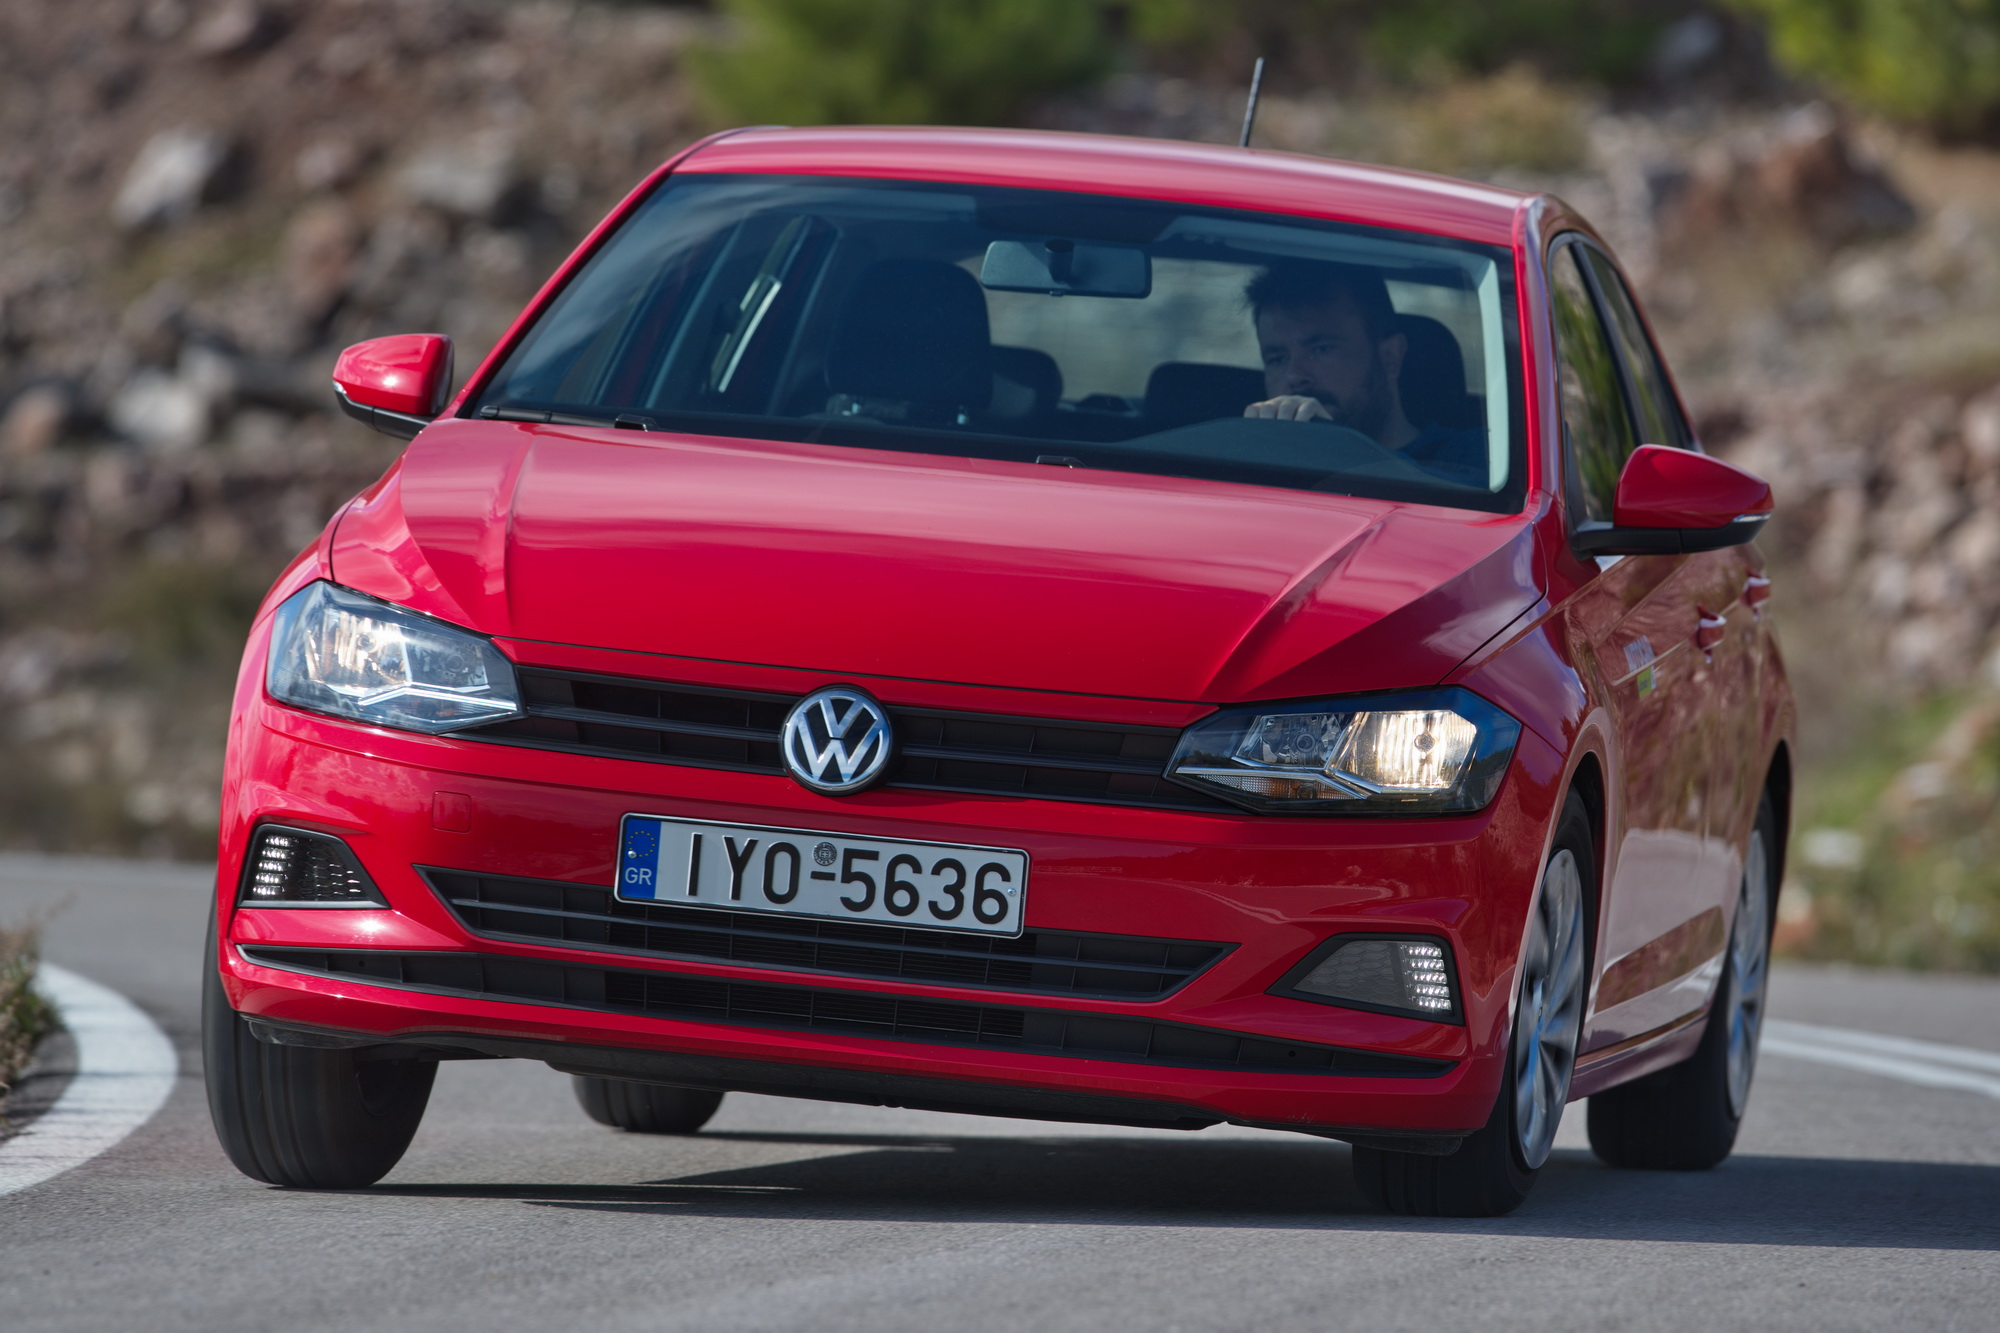 Test drive: Volkswagen Polo 1.0 MPI EVO 80 PS, Photos by Thanassis Koutsogiannis